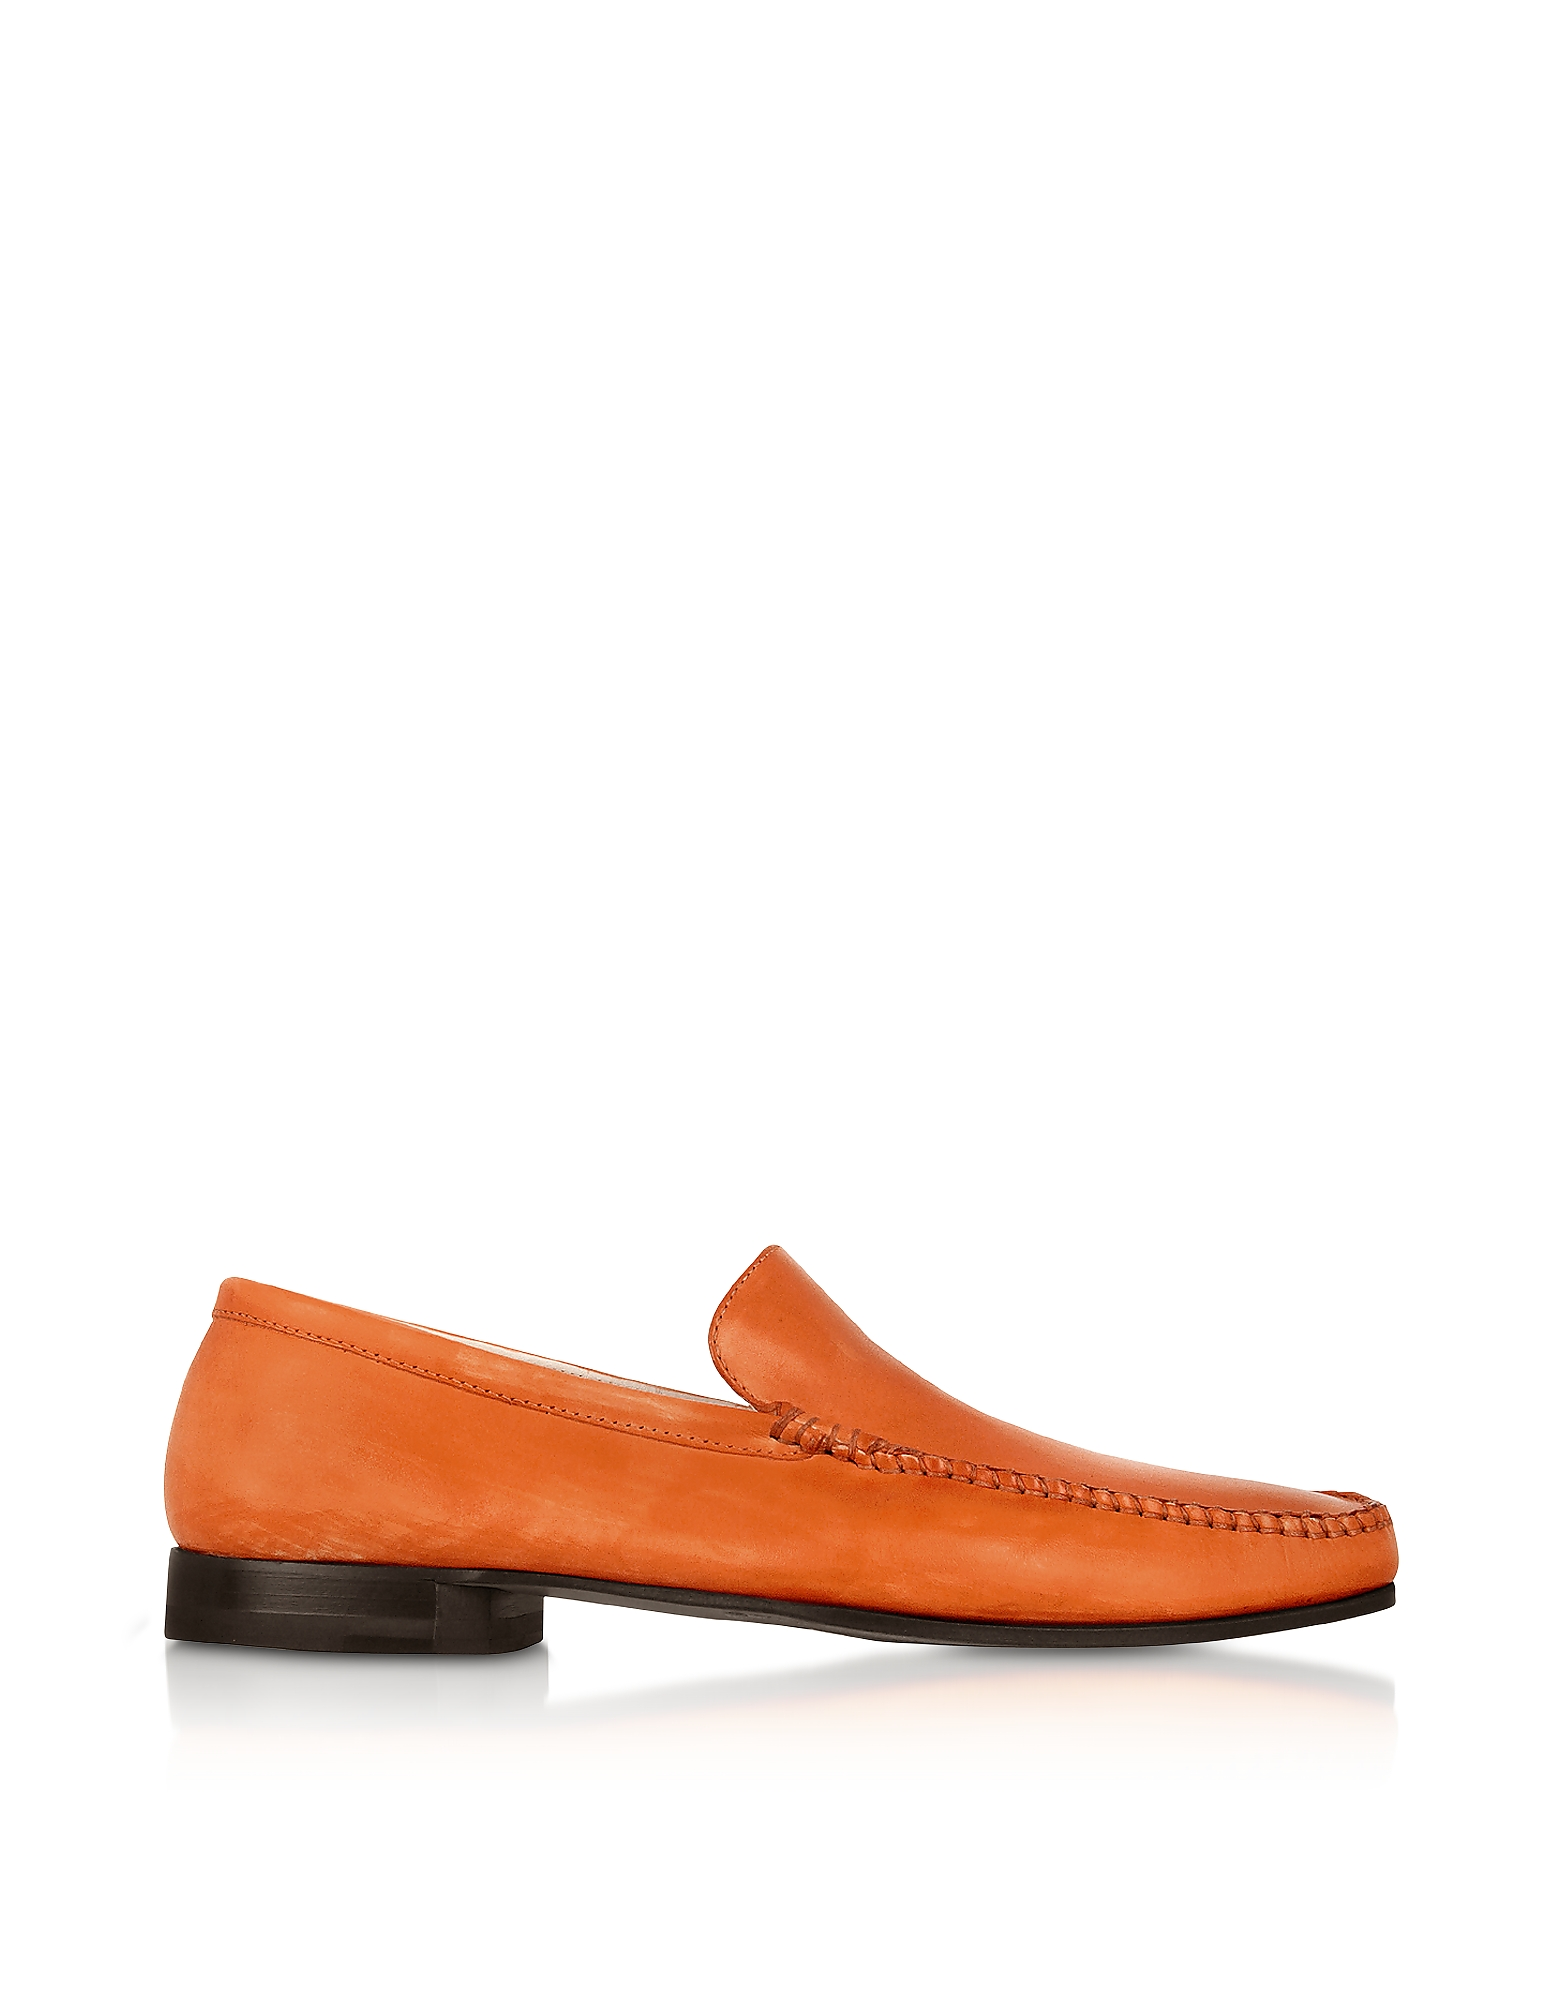 Pakerson Shoes, Orange Italian Handmade Leather Loafer Shoes